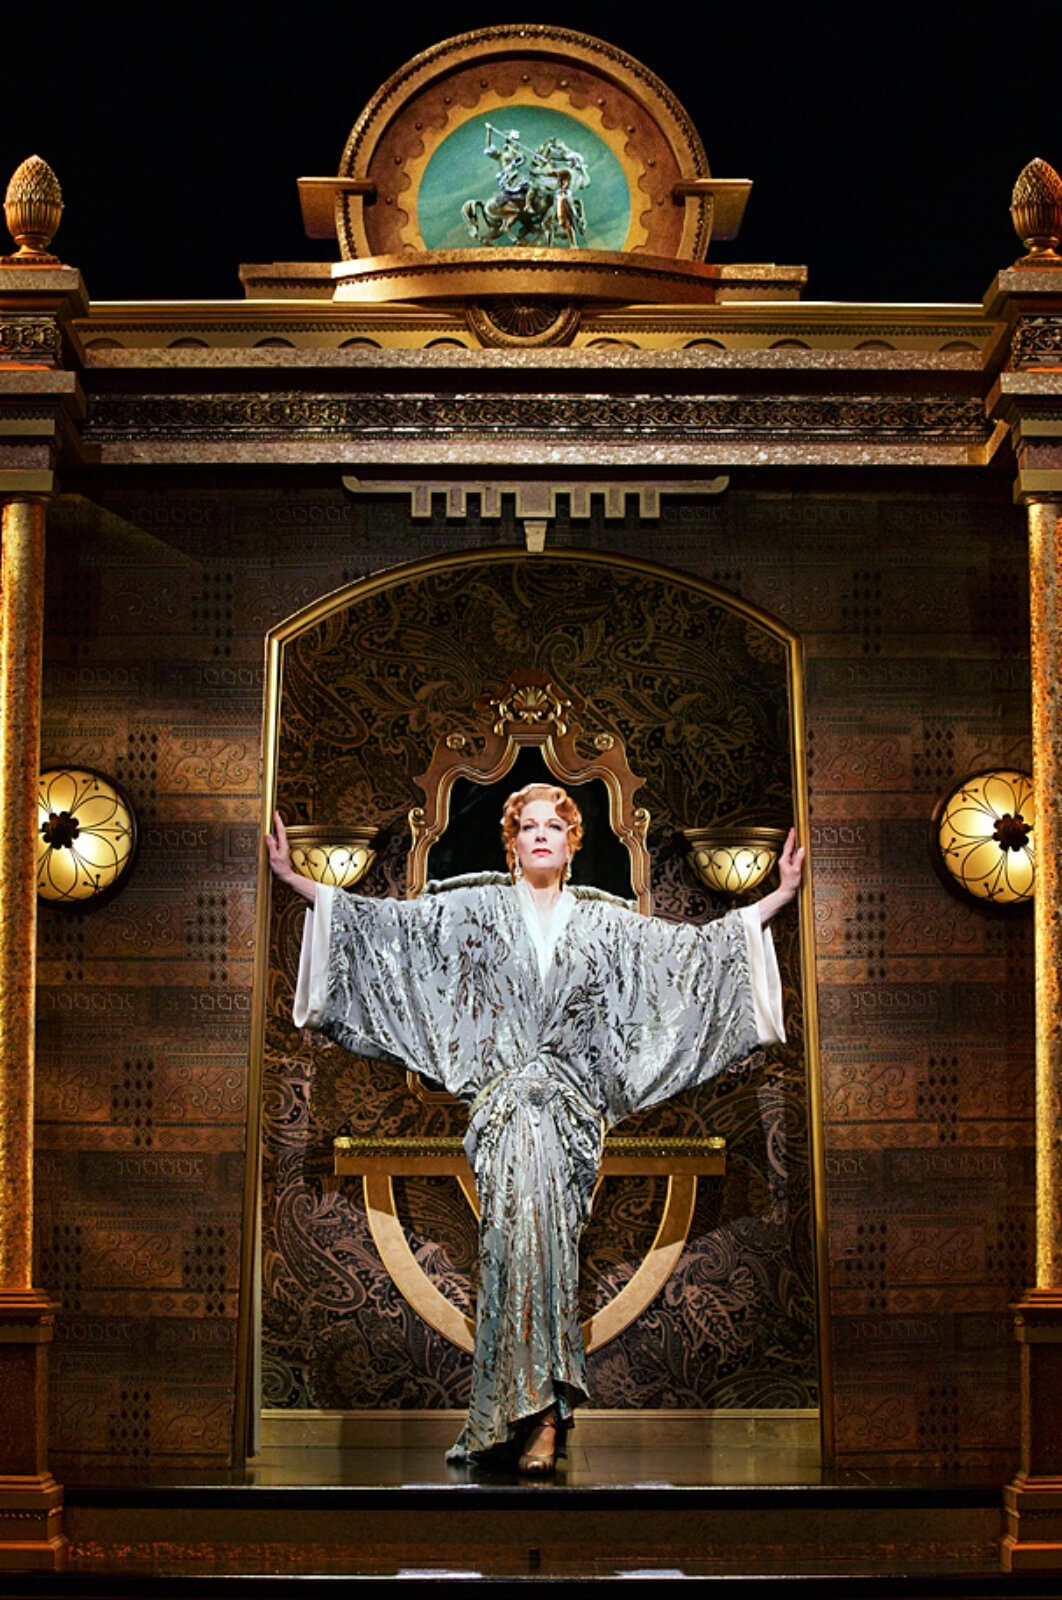 Helen Sinclair (Marin Mazzie) in her first entrance. She stands a doorway in a silver robe.